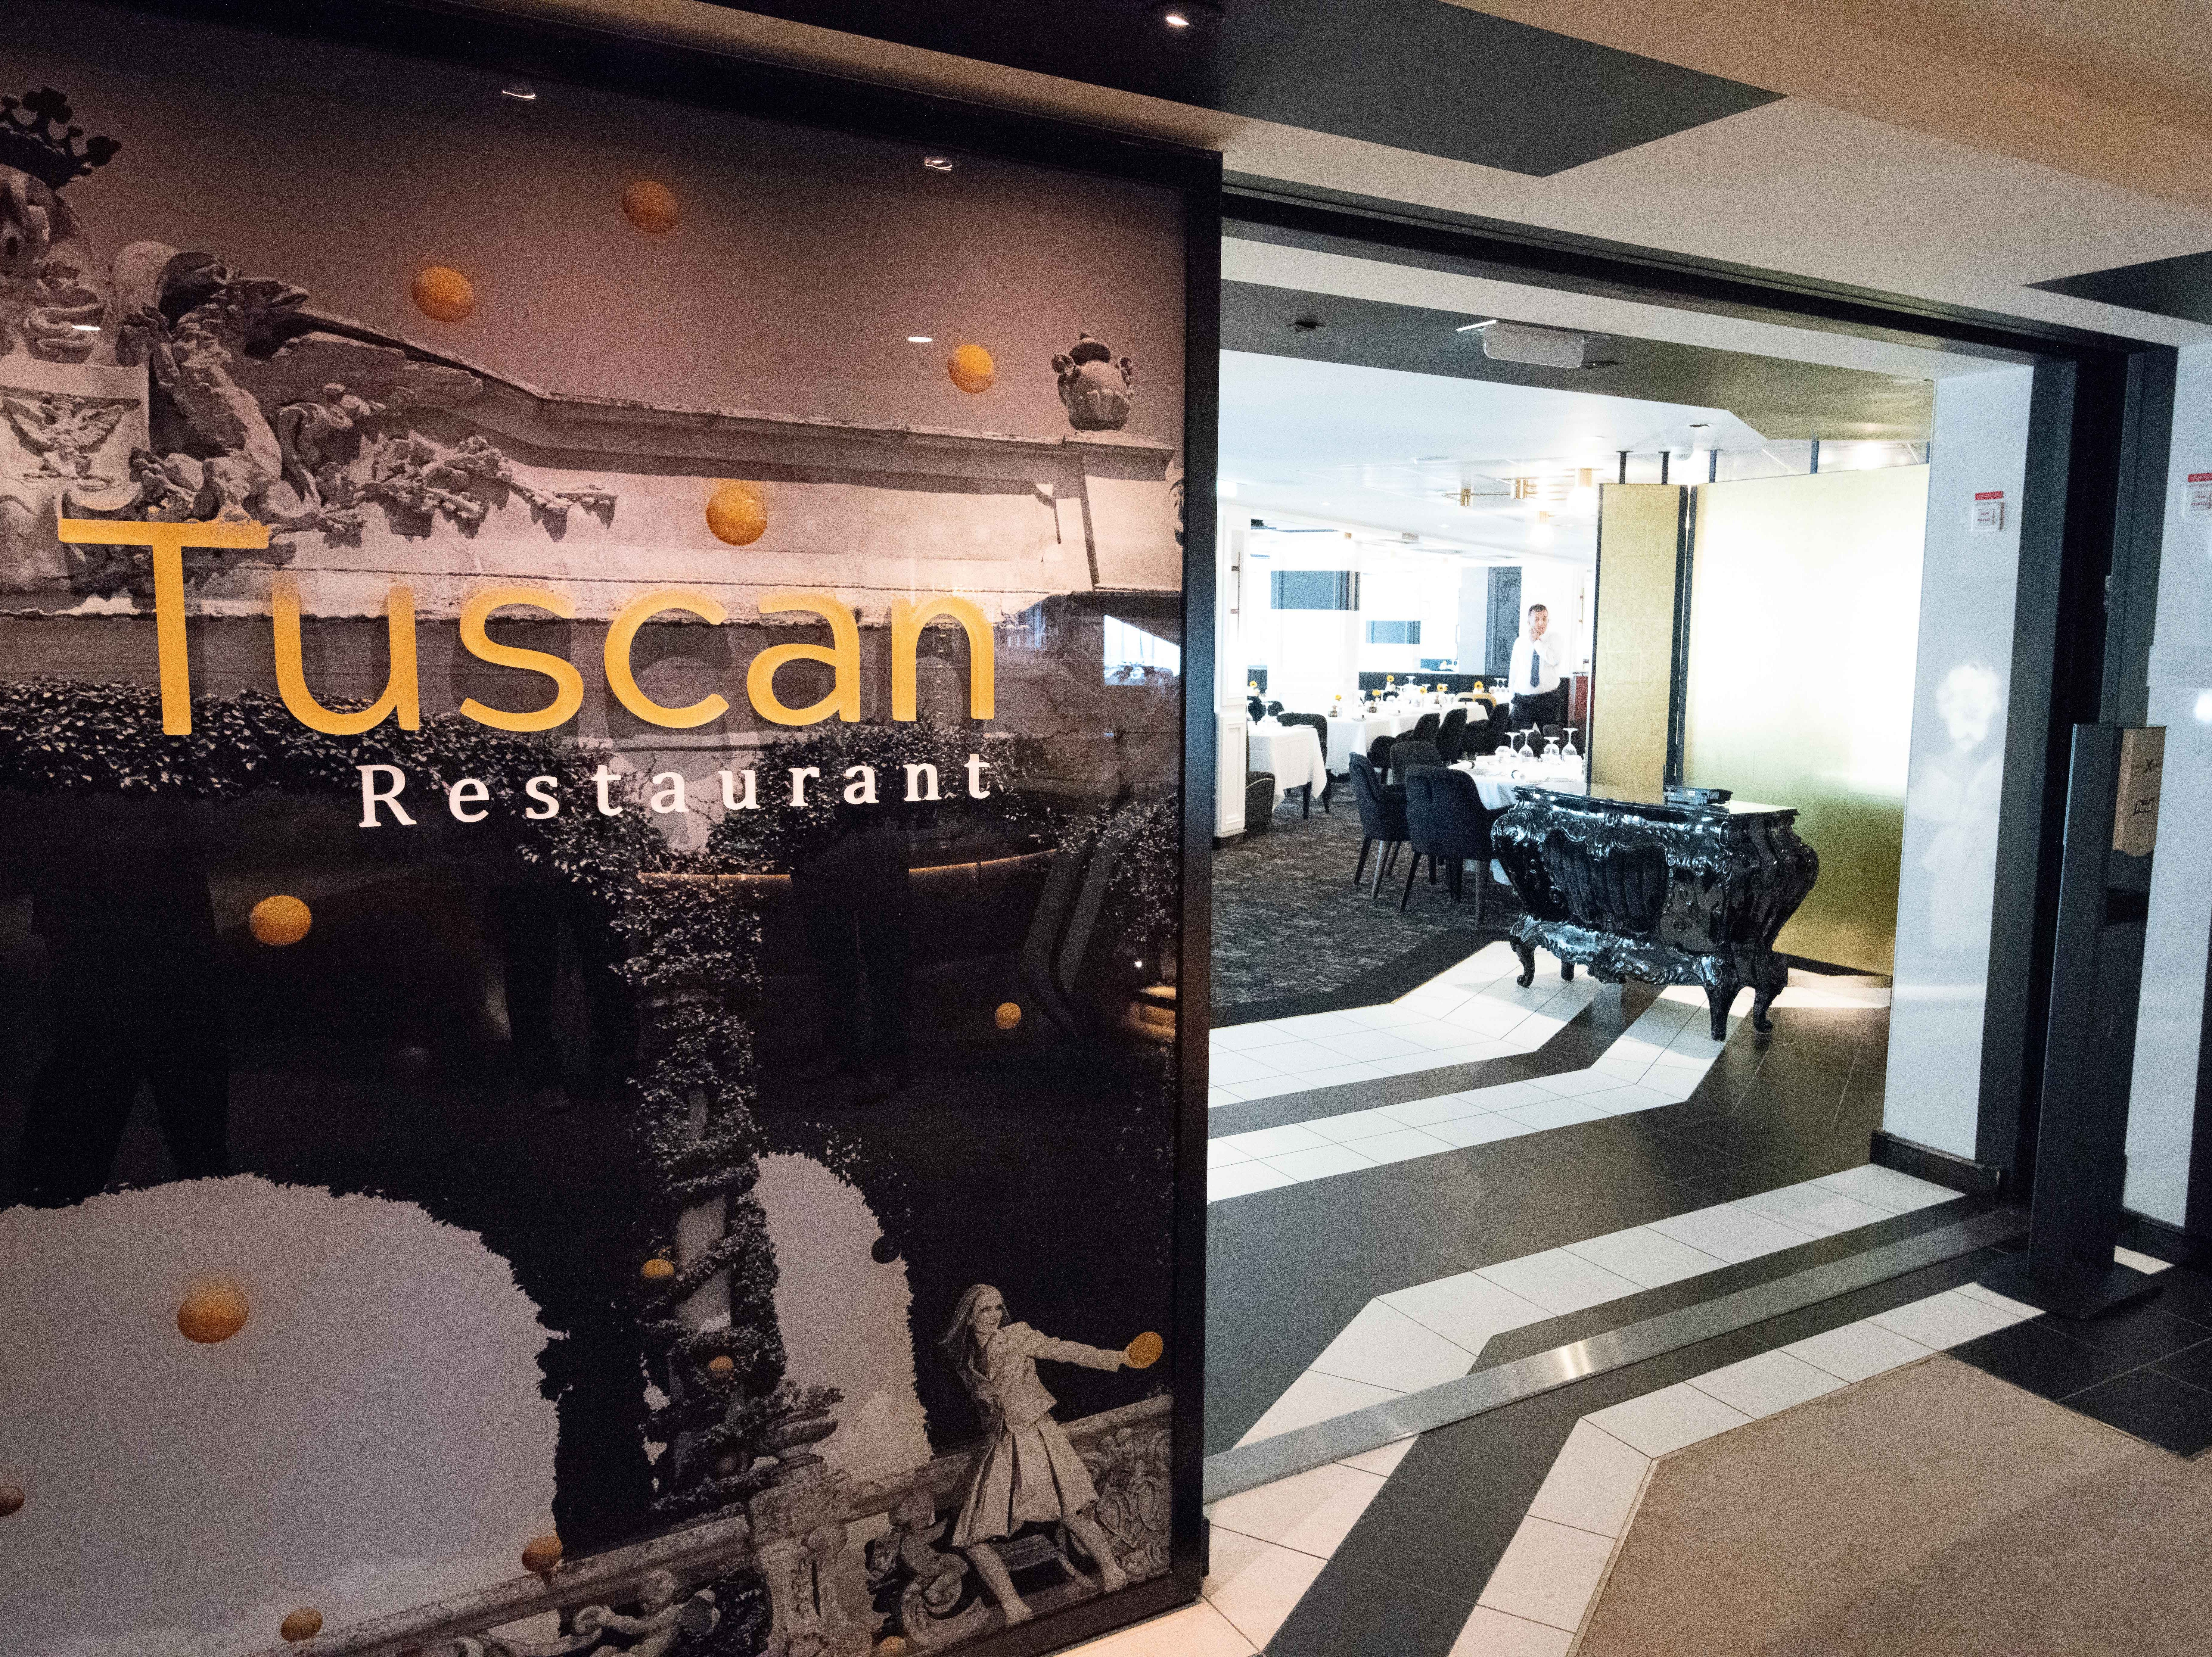 Unlike earlier Celebrity Cruises ships, Celebrity Edge doesn't have a single large main restaurant. Instead, it has four smaller main restaurants., each with a different name, decor and dishes. Among them is Tuscan Restaurant.